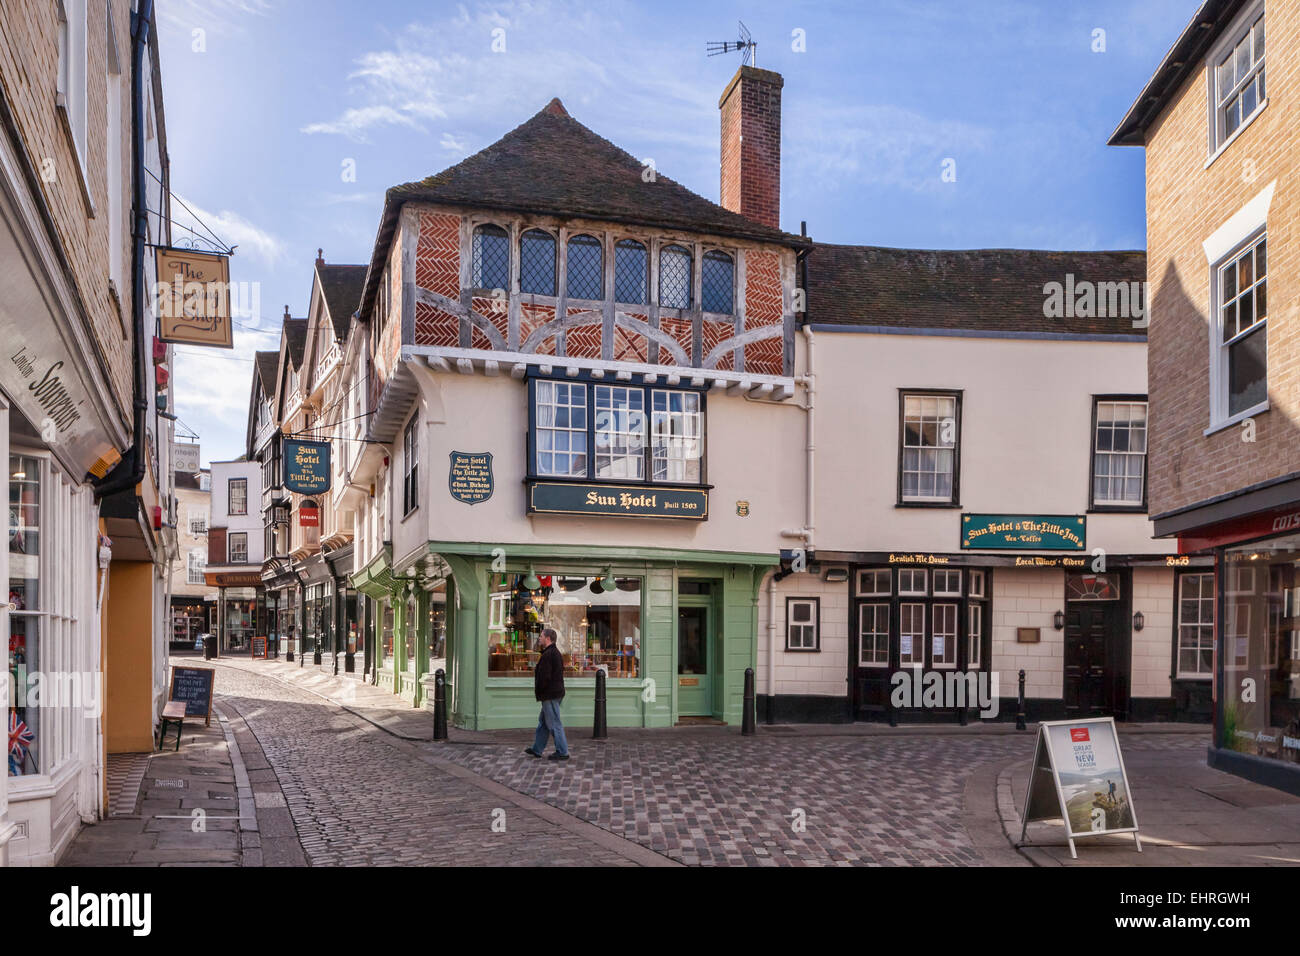 The Sun Hotel in Sun Street, Canterbury, Kent, England. - Stock Image